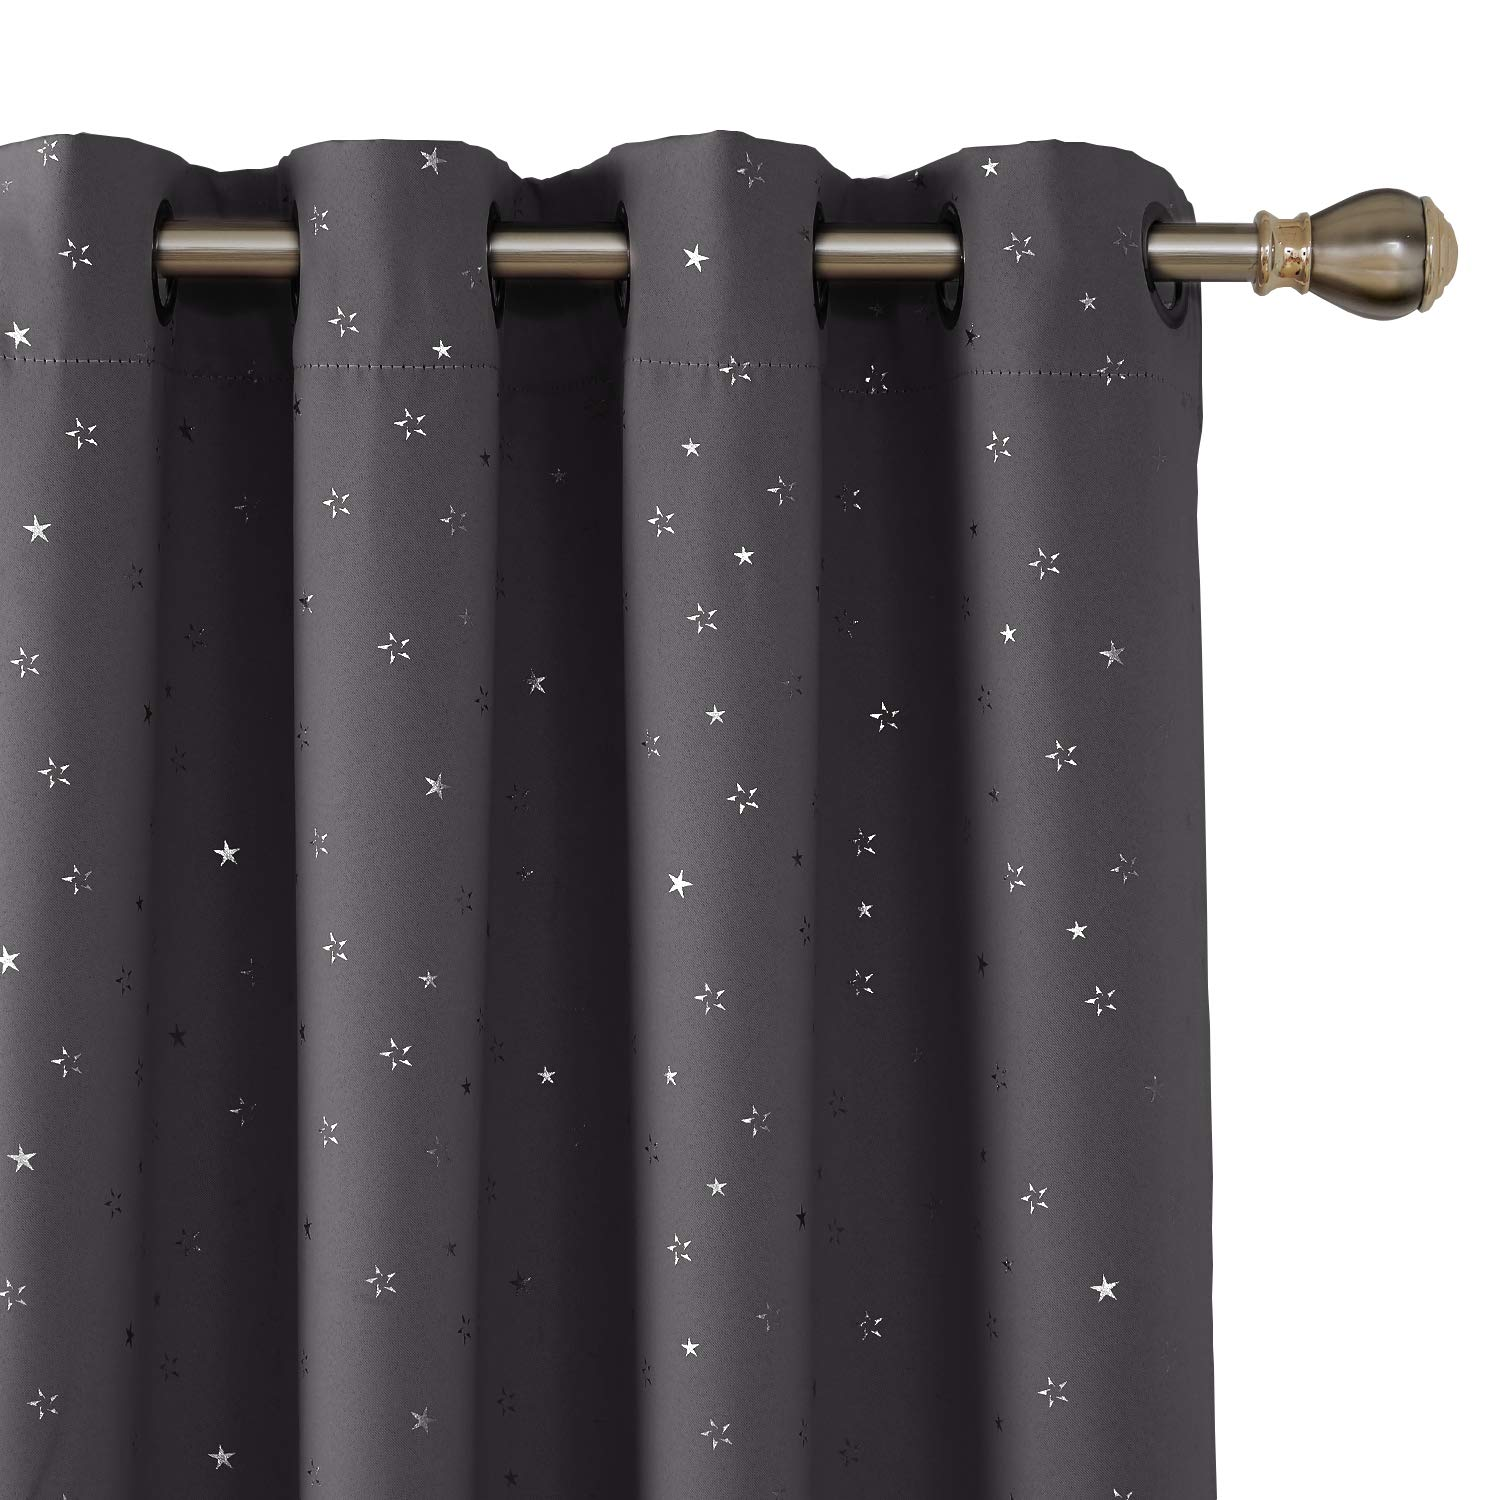 Deconovo Silver Star Foil Print Grommet Blackout Curtains Navy Blue Curtains Room Darkening Thermal Insulated Curtains for Bedroom 38 x 45 inches 2 Panels